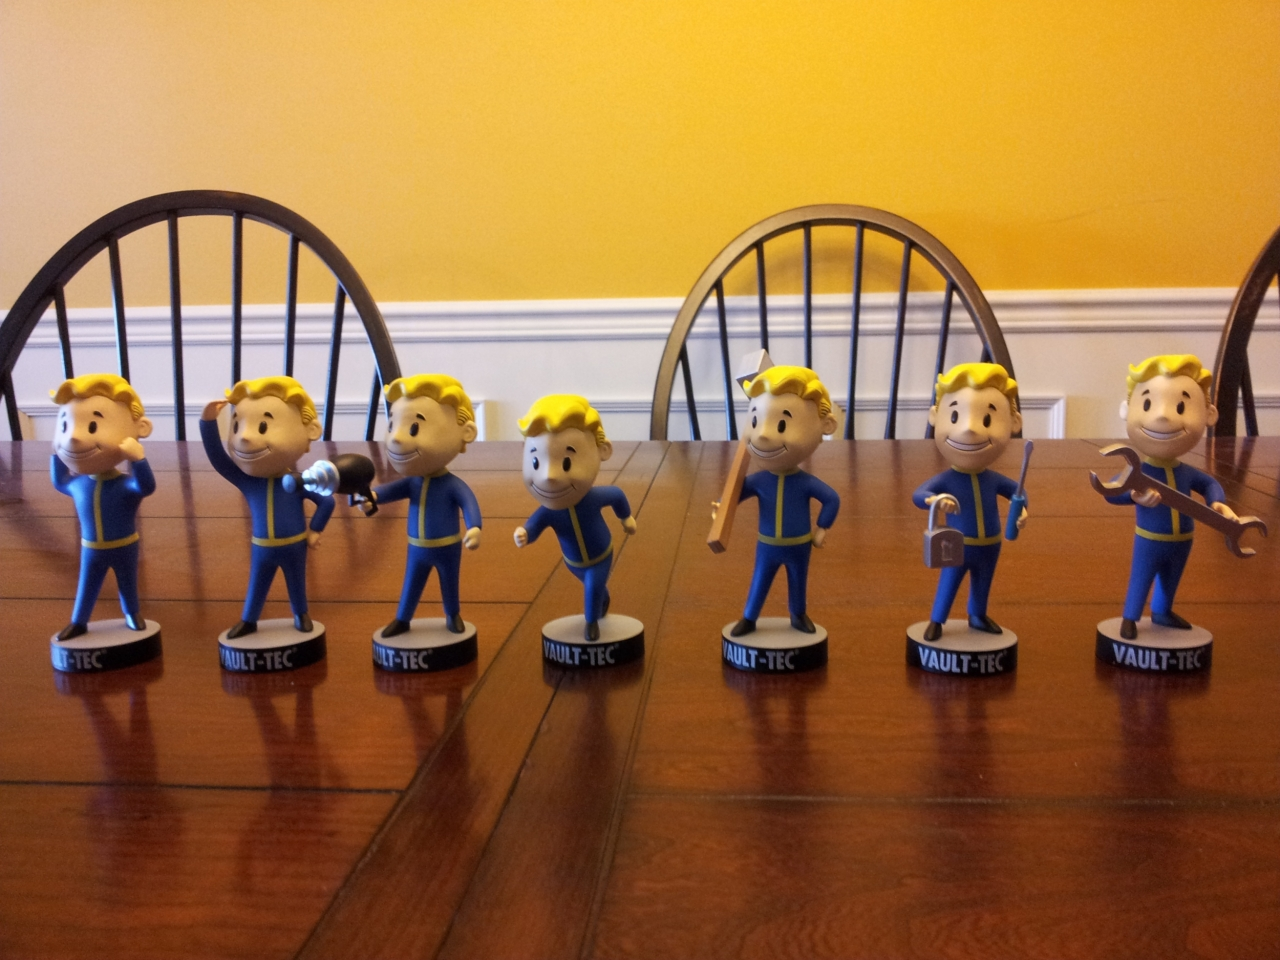 Official Fallout 3 bobbleheads unboxing!